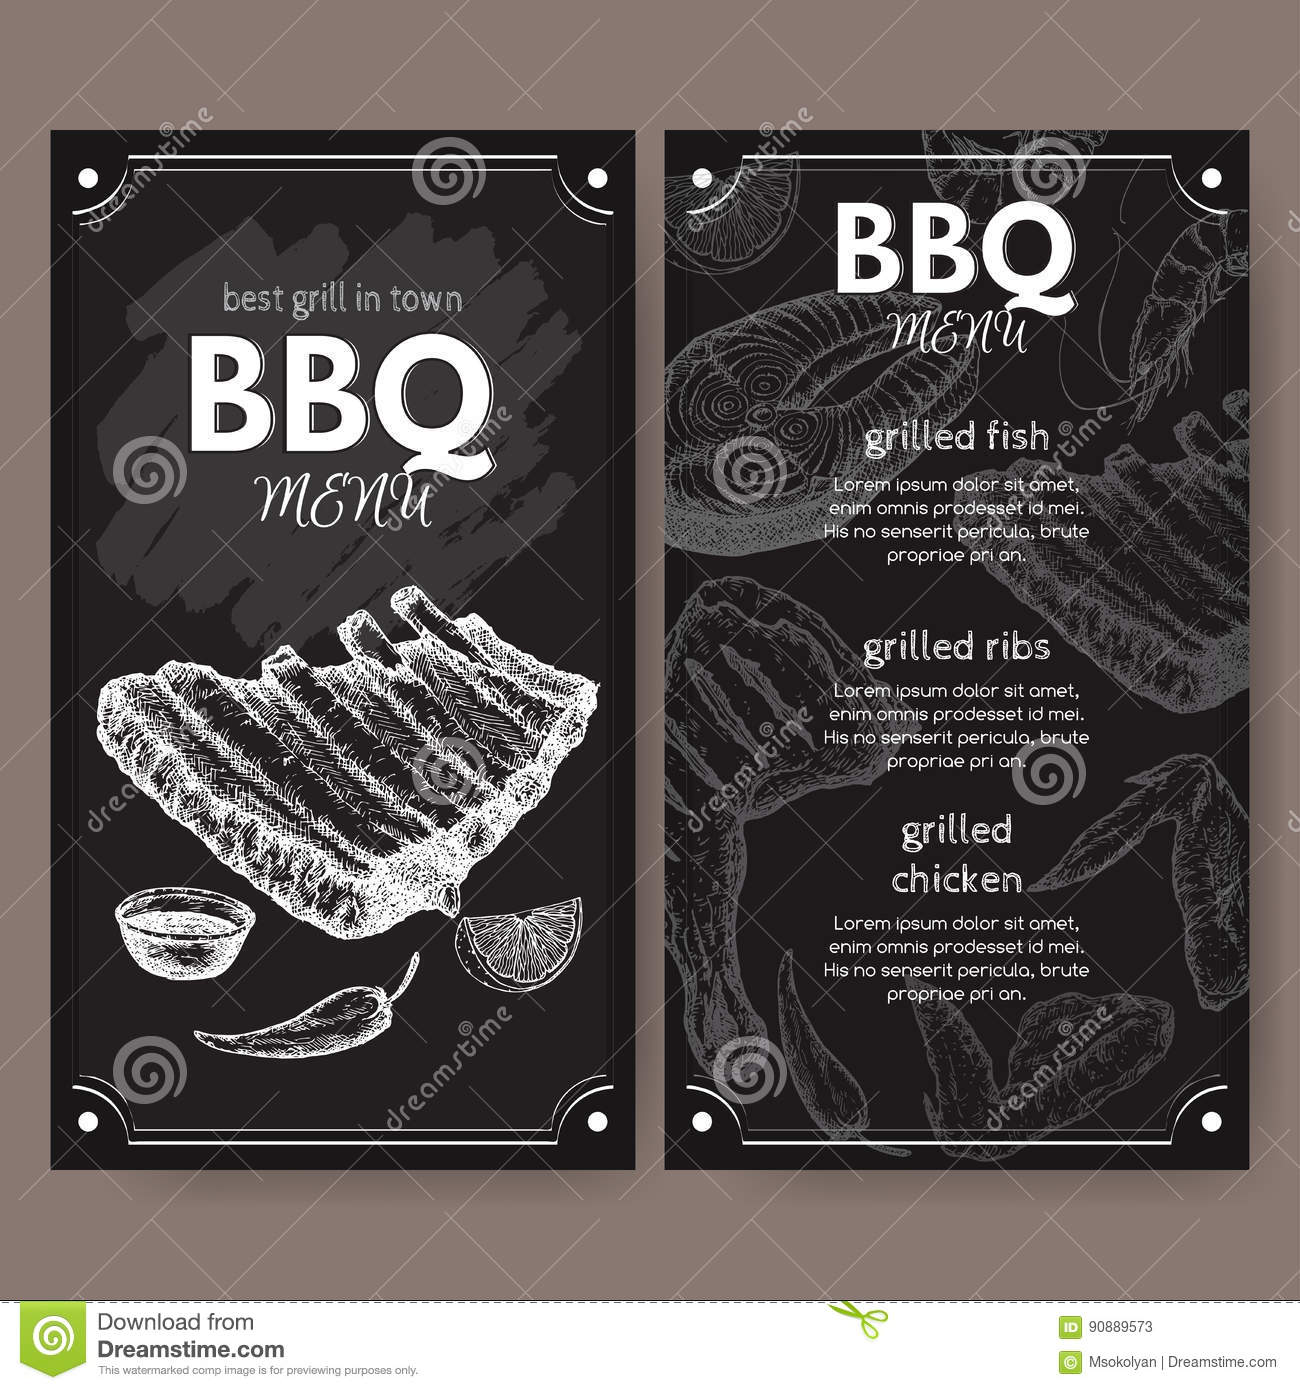 Vintage grill restaurant menu template with hand drawn sketch stock download vintage grill restaurant menu template with hand drawn sketch stock vector illustration of gourmet maxwellsz